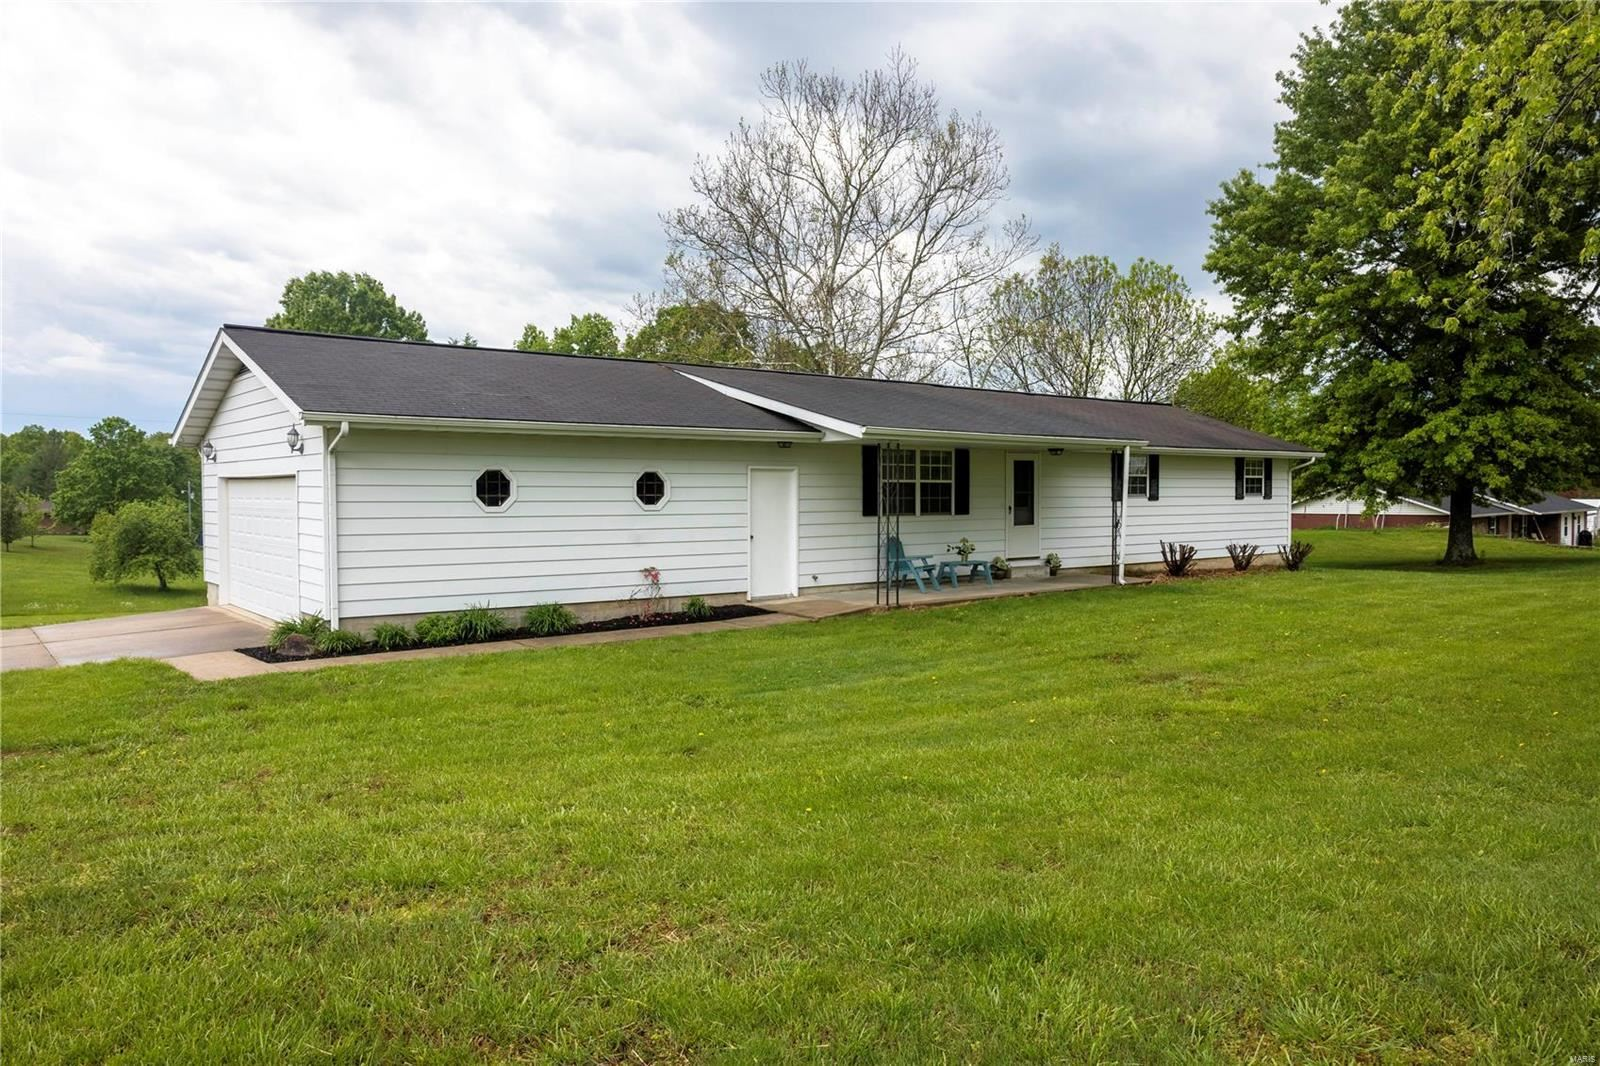 Photo of 11883 State Highway 72, Millersville, MO 63766 (MLS # 21028742)